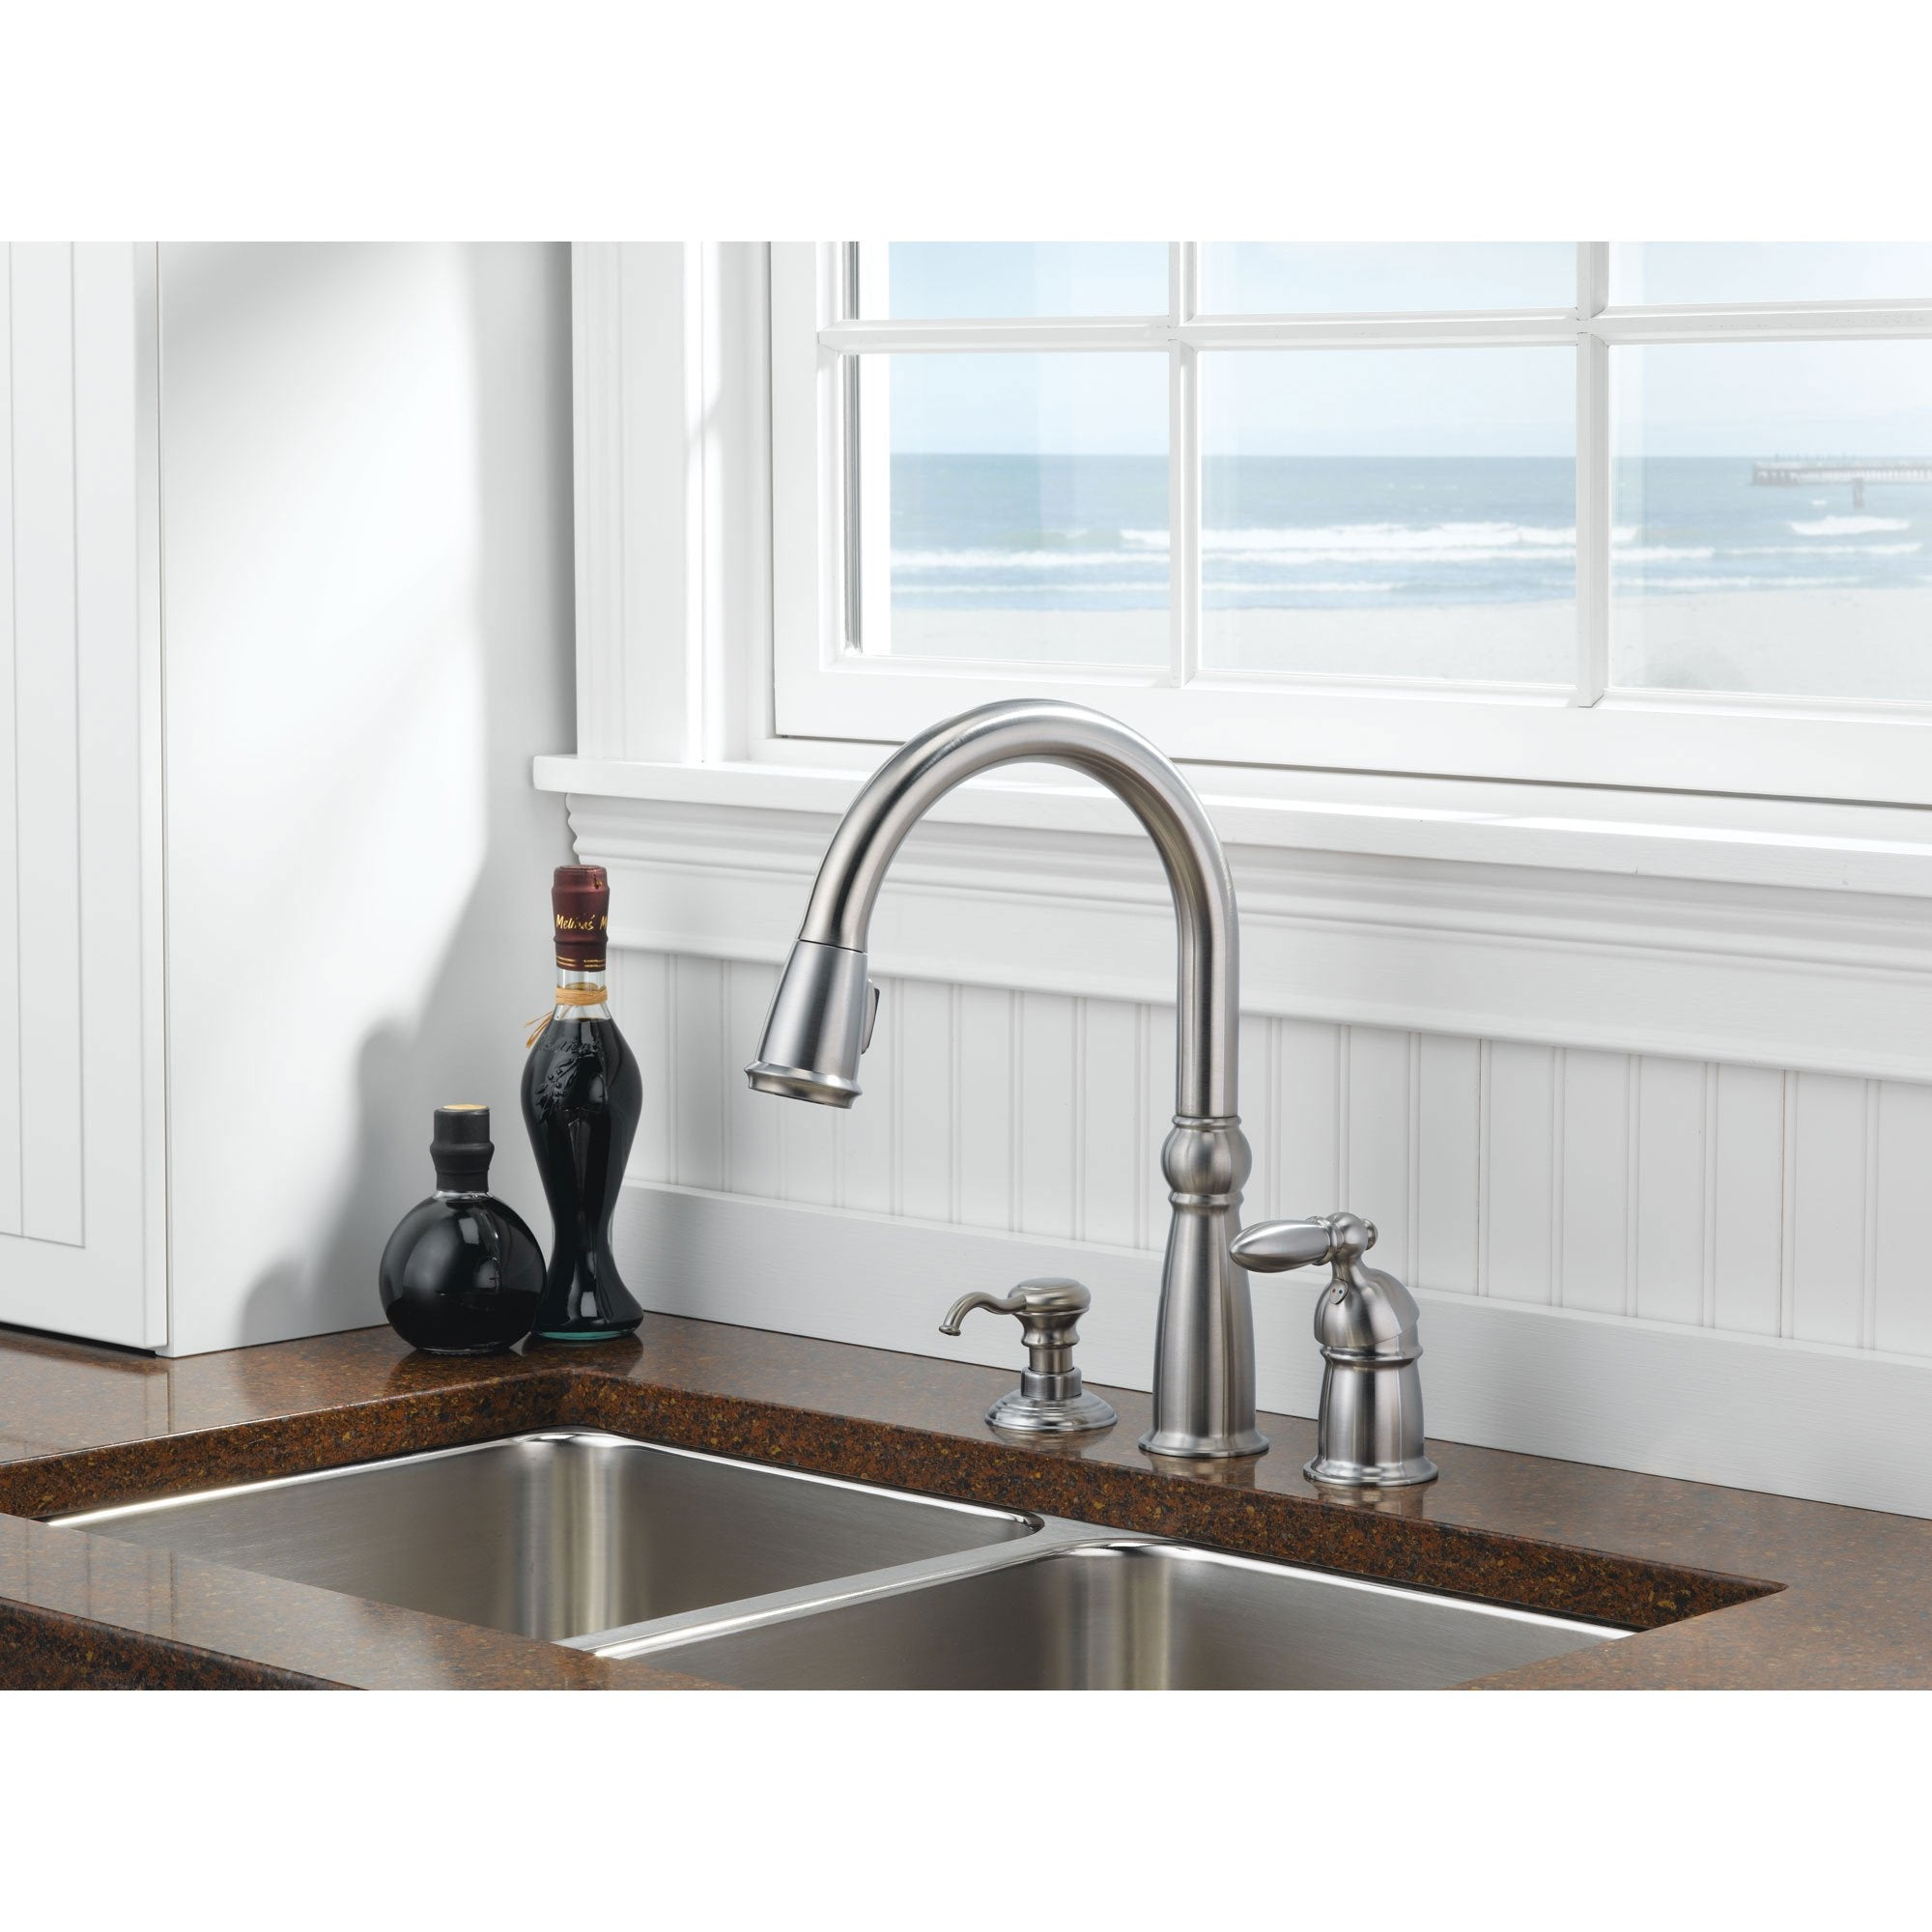 Delta Victorian Collection Stainless Steel Finish Single Handle Pull Down Kitchen Sink Faucet and Soap Dispenser Package D025CR